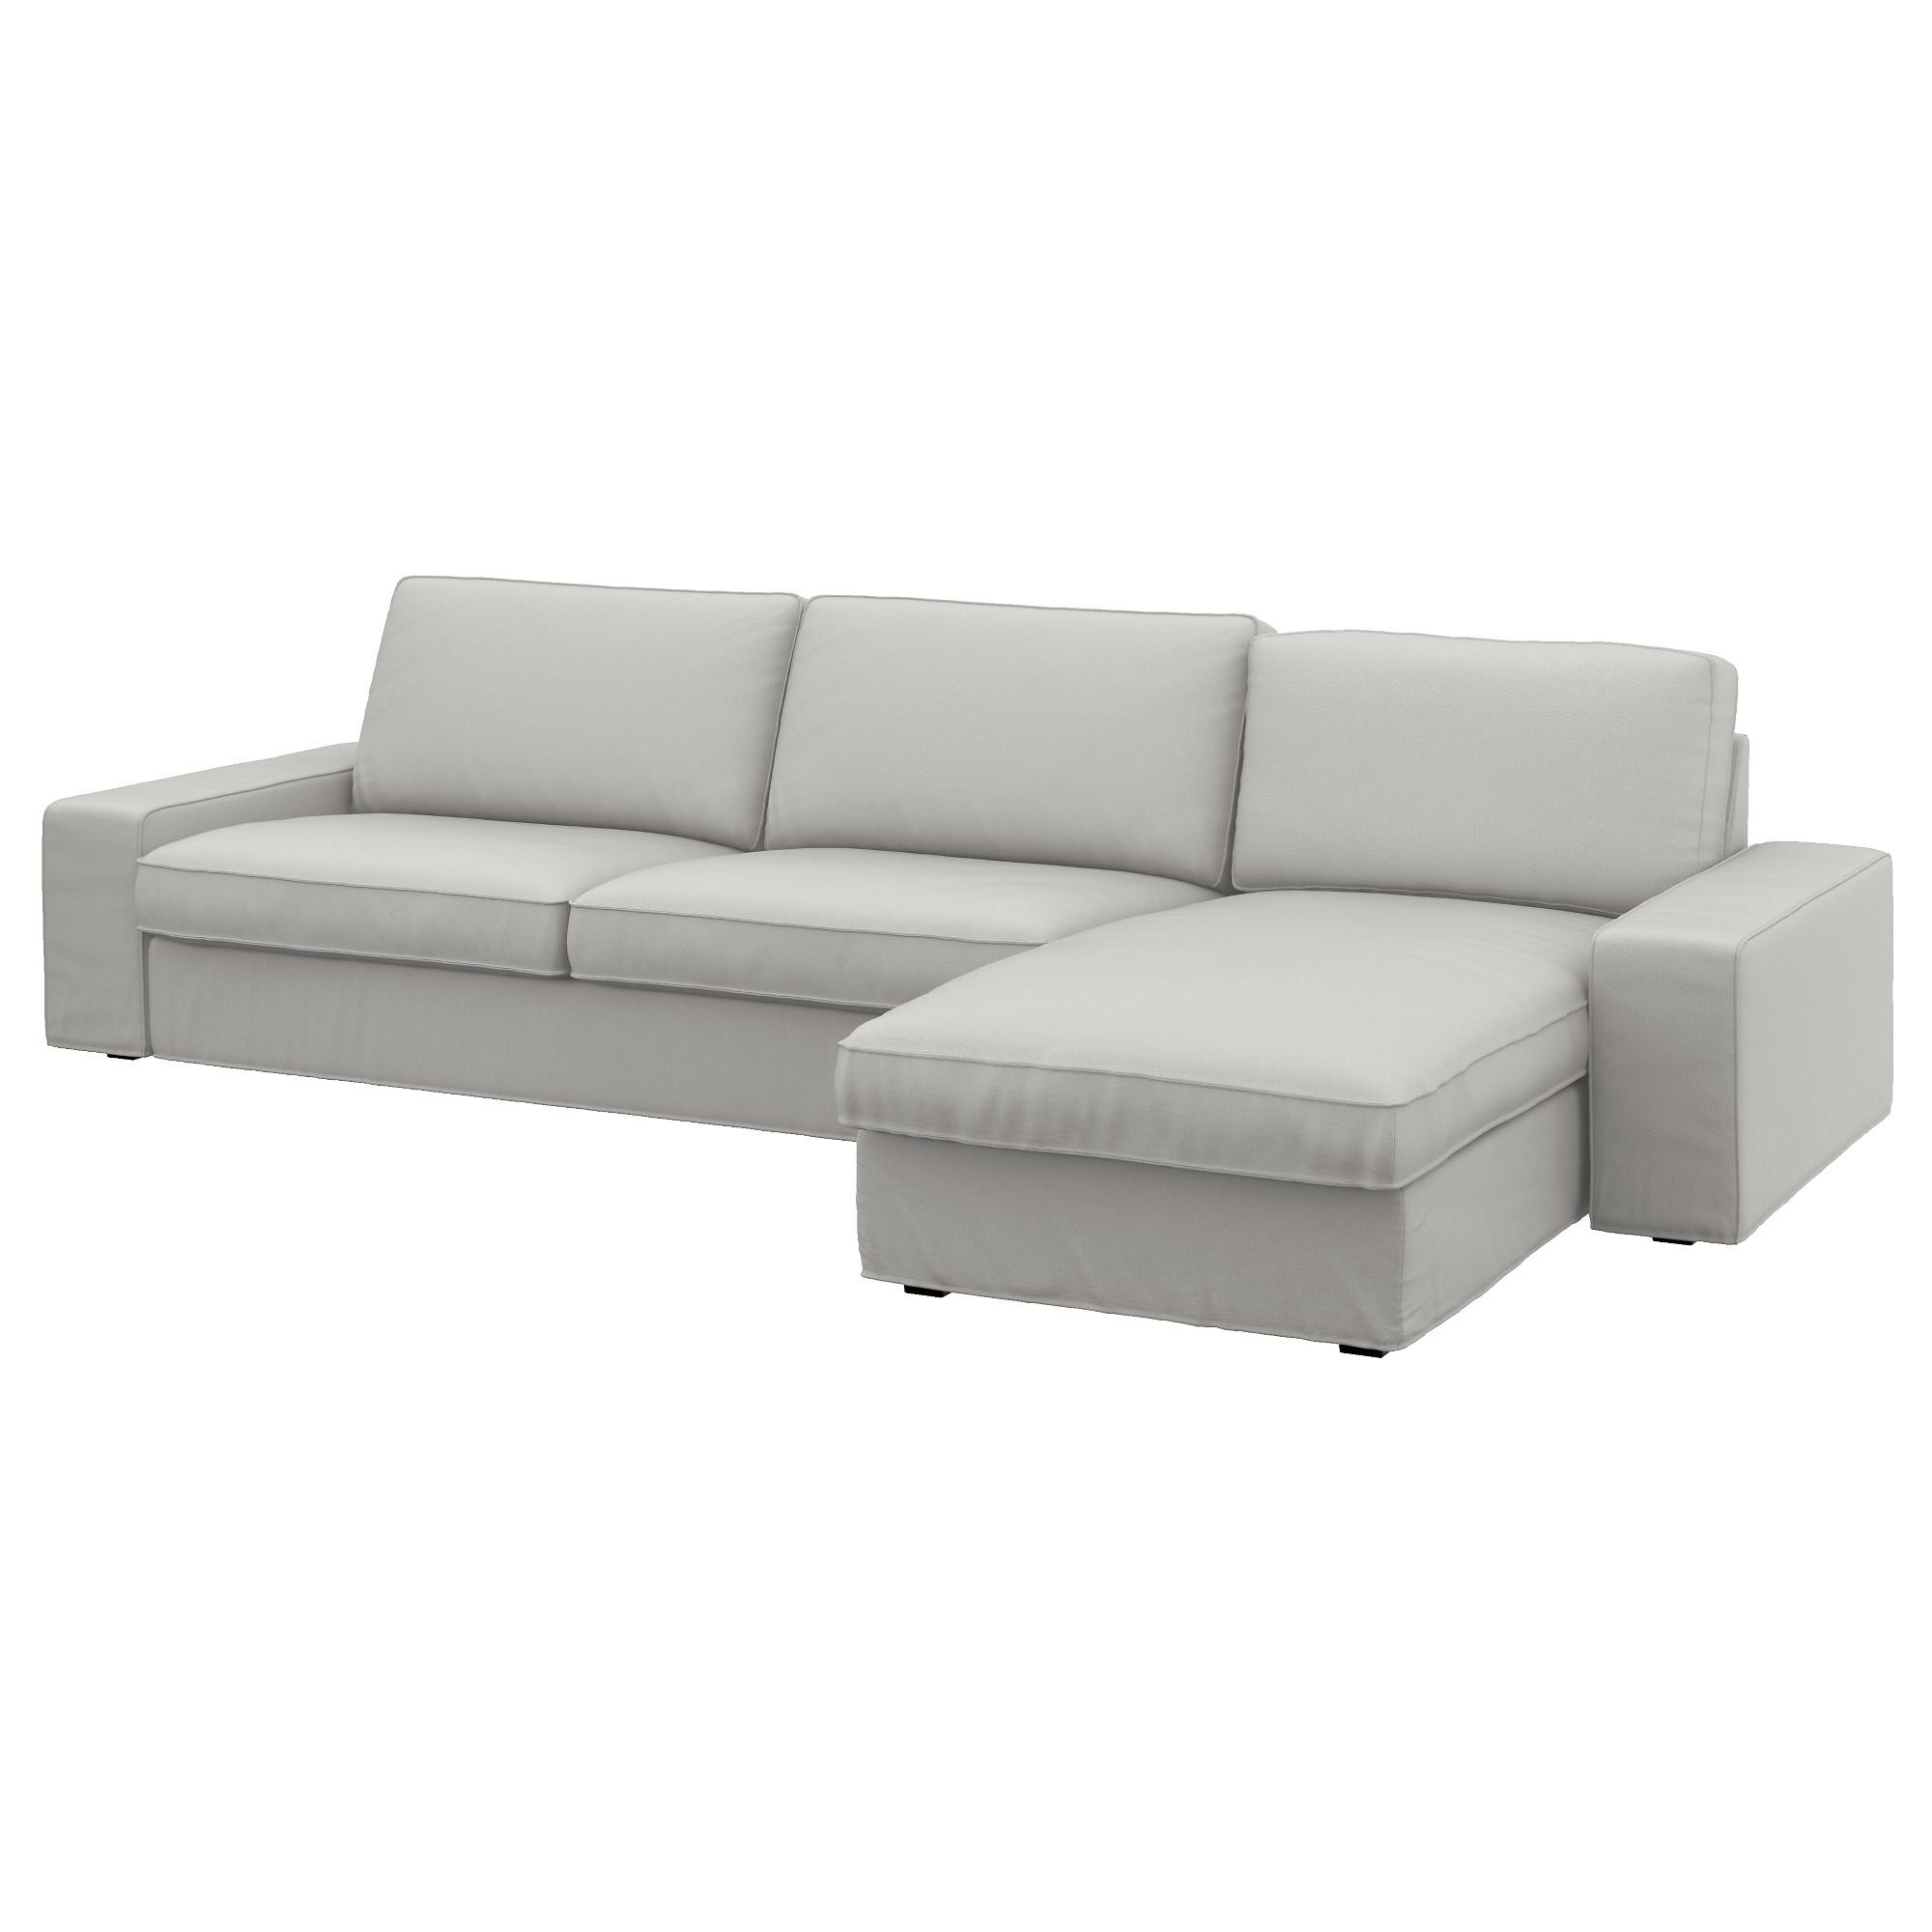 Kivik 4 Seat Sofa With Chaise Longue/ramna Light Grey – Ikea Intended For Sofas With Chaise Longue (View 17 of 20)